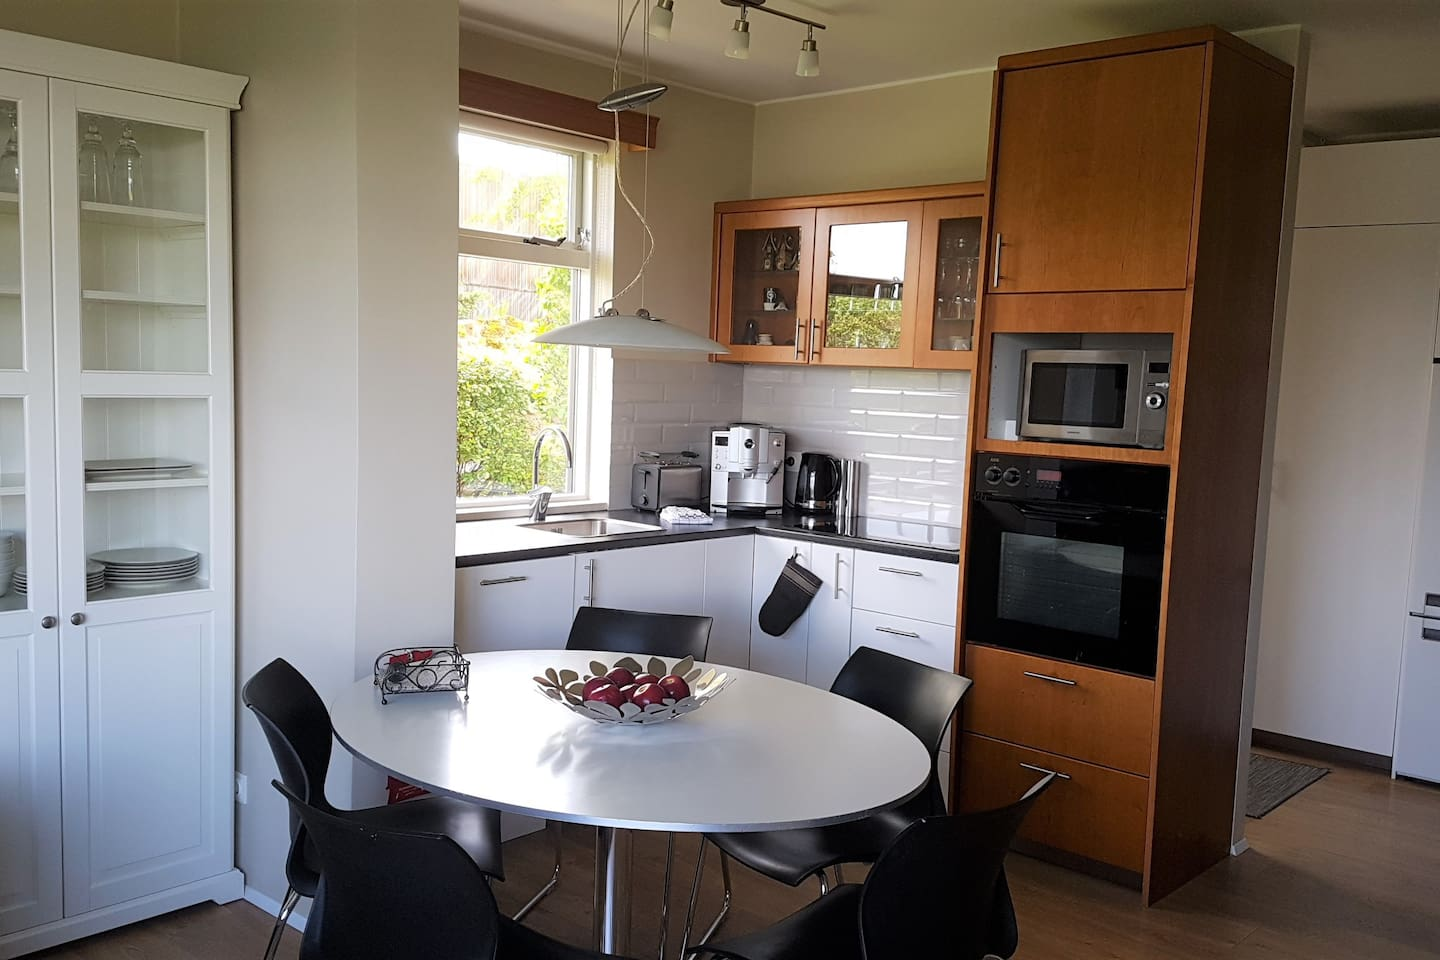 Seaside private apt. close to city centre - Apartments for Rent in ...